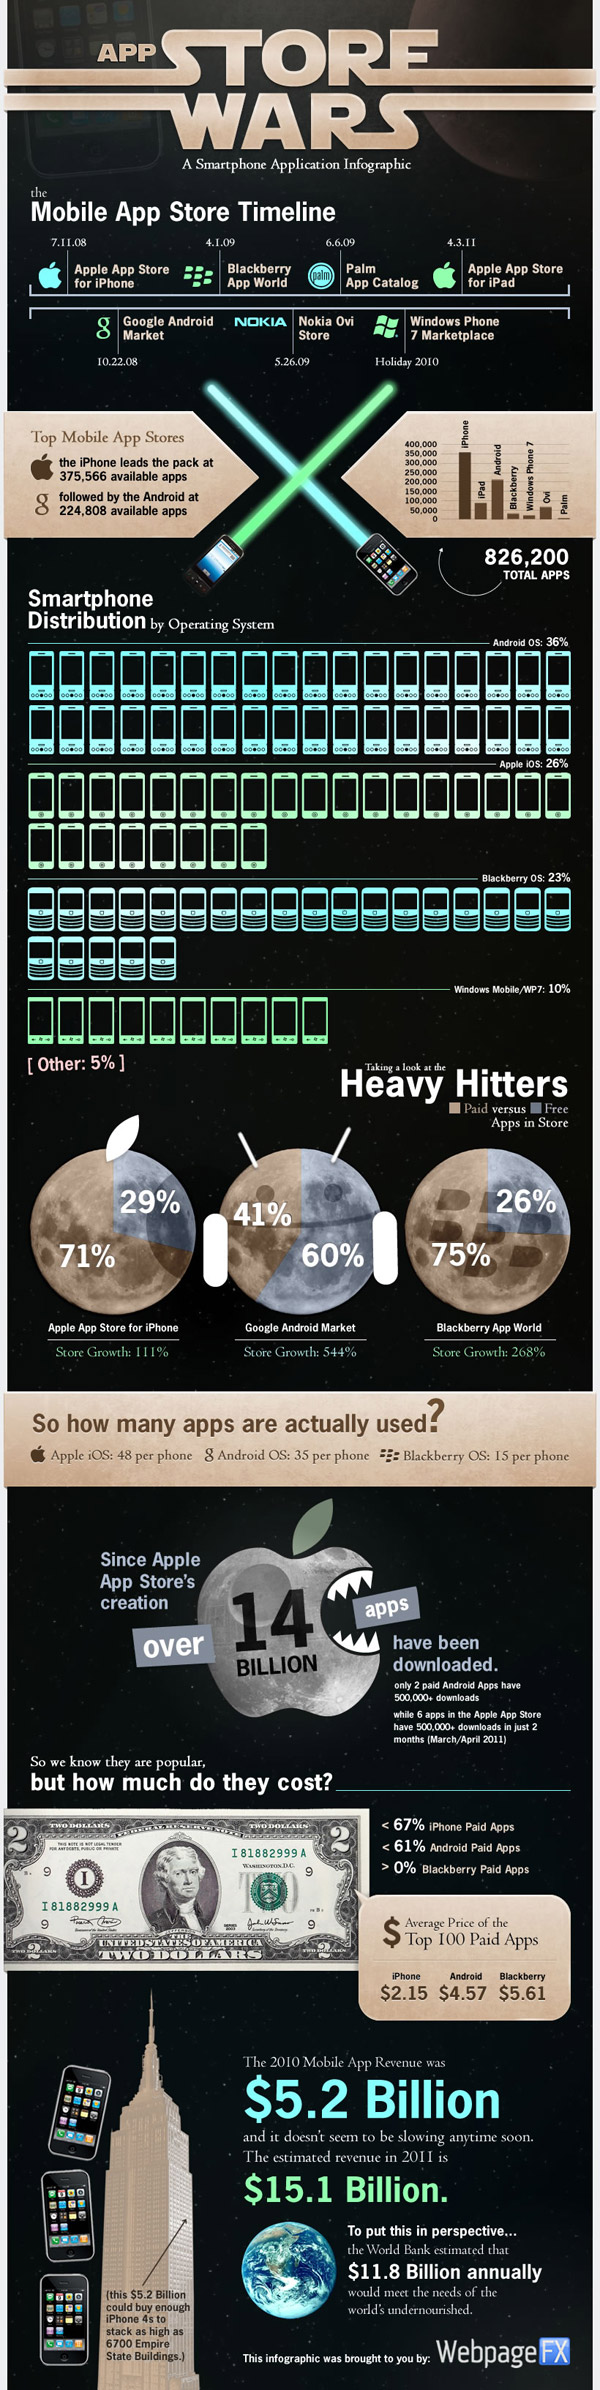 App Store Wars infographic